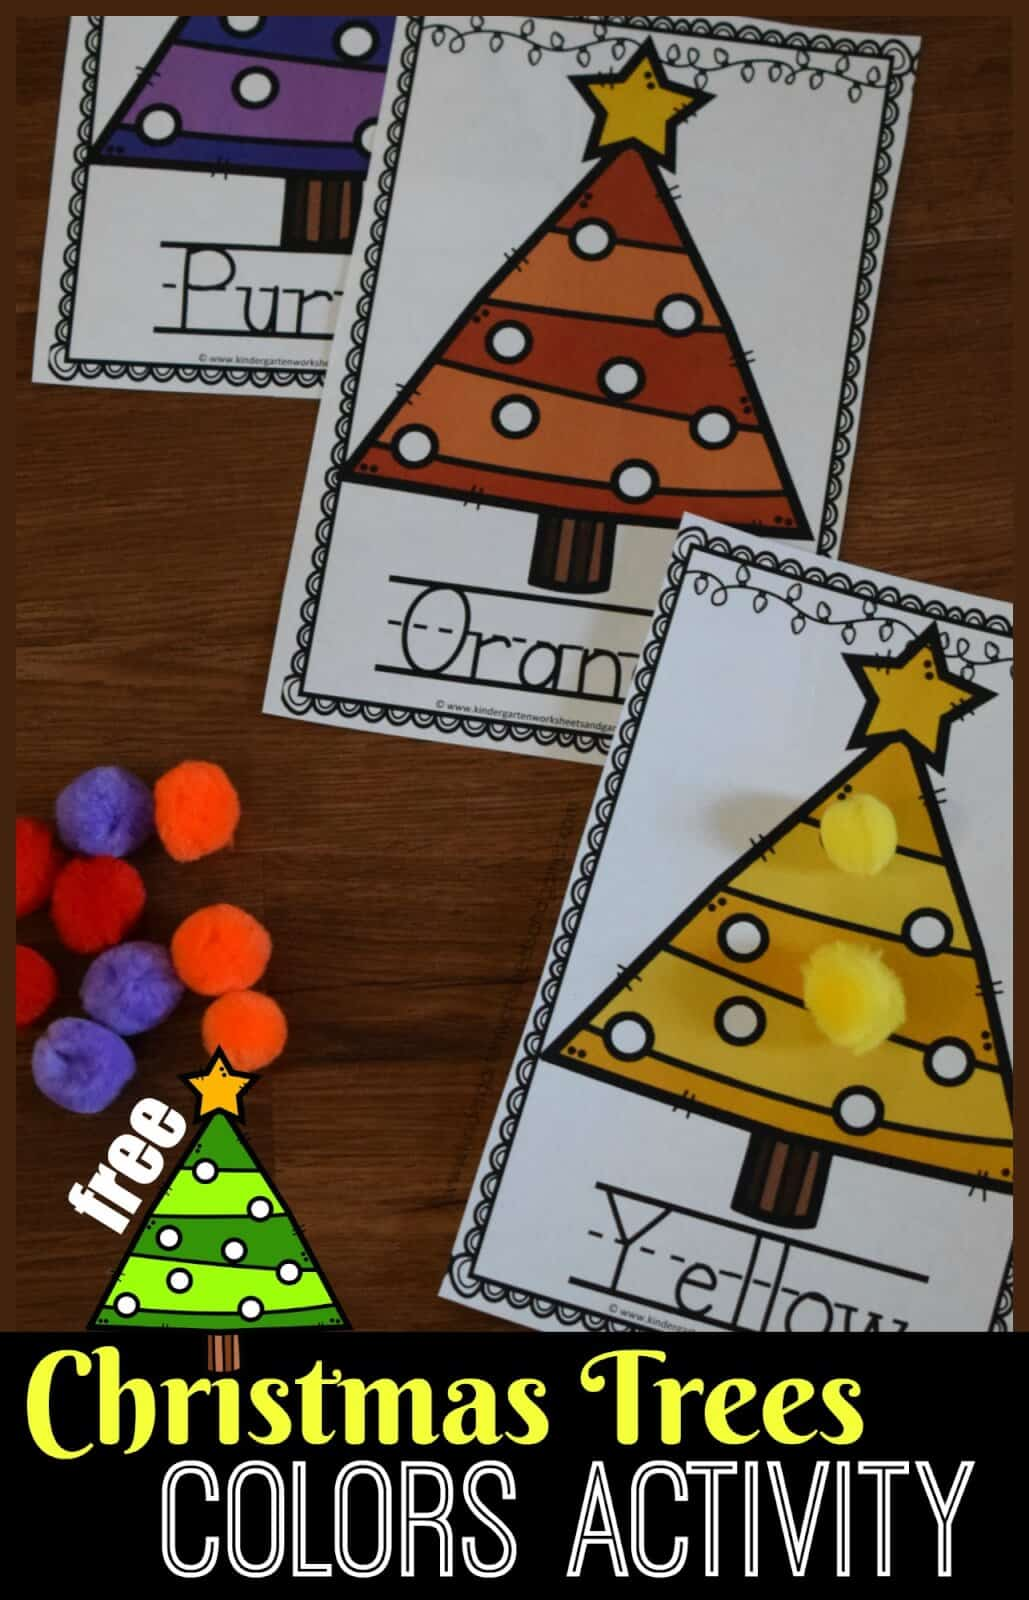 FREE Christmas Tree Colors Activity - this free printable color activity is perfect for helping toddler, preschool, prek, and kindergarten age kid practice matching colors with a fun, Christmas activity. Great for improving fine motor skills too. #coloractivities #christmaslearning #christmasactivity